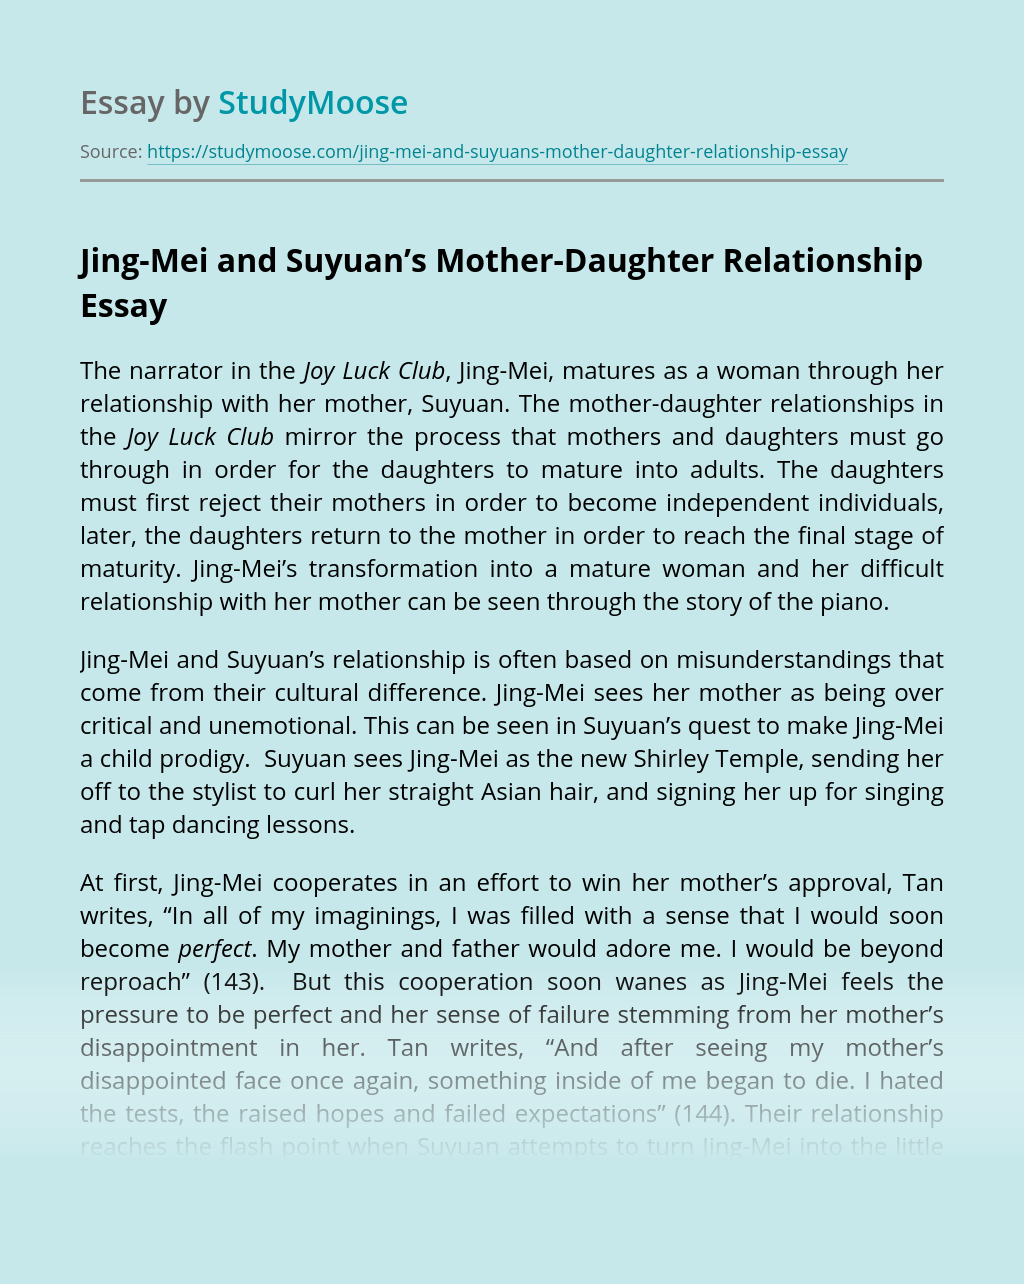 Jing-Mei and Suyuan's Mother-Daughter Relationship